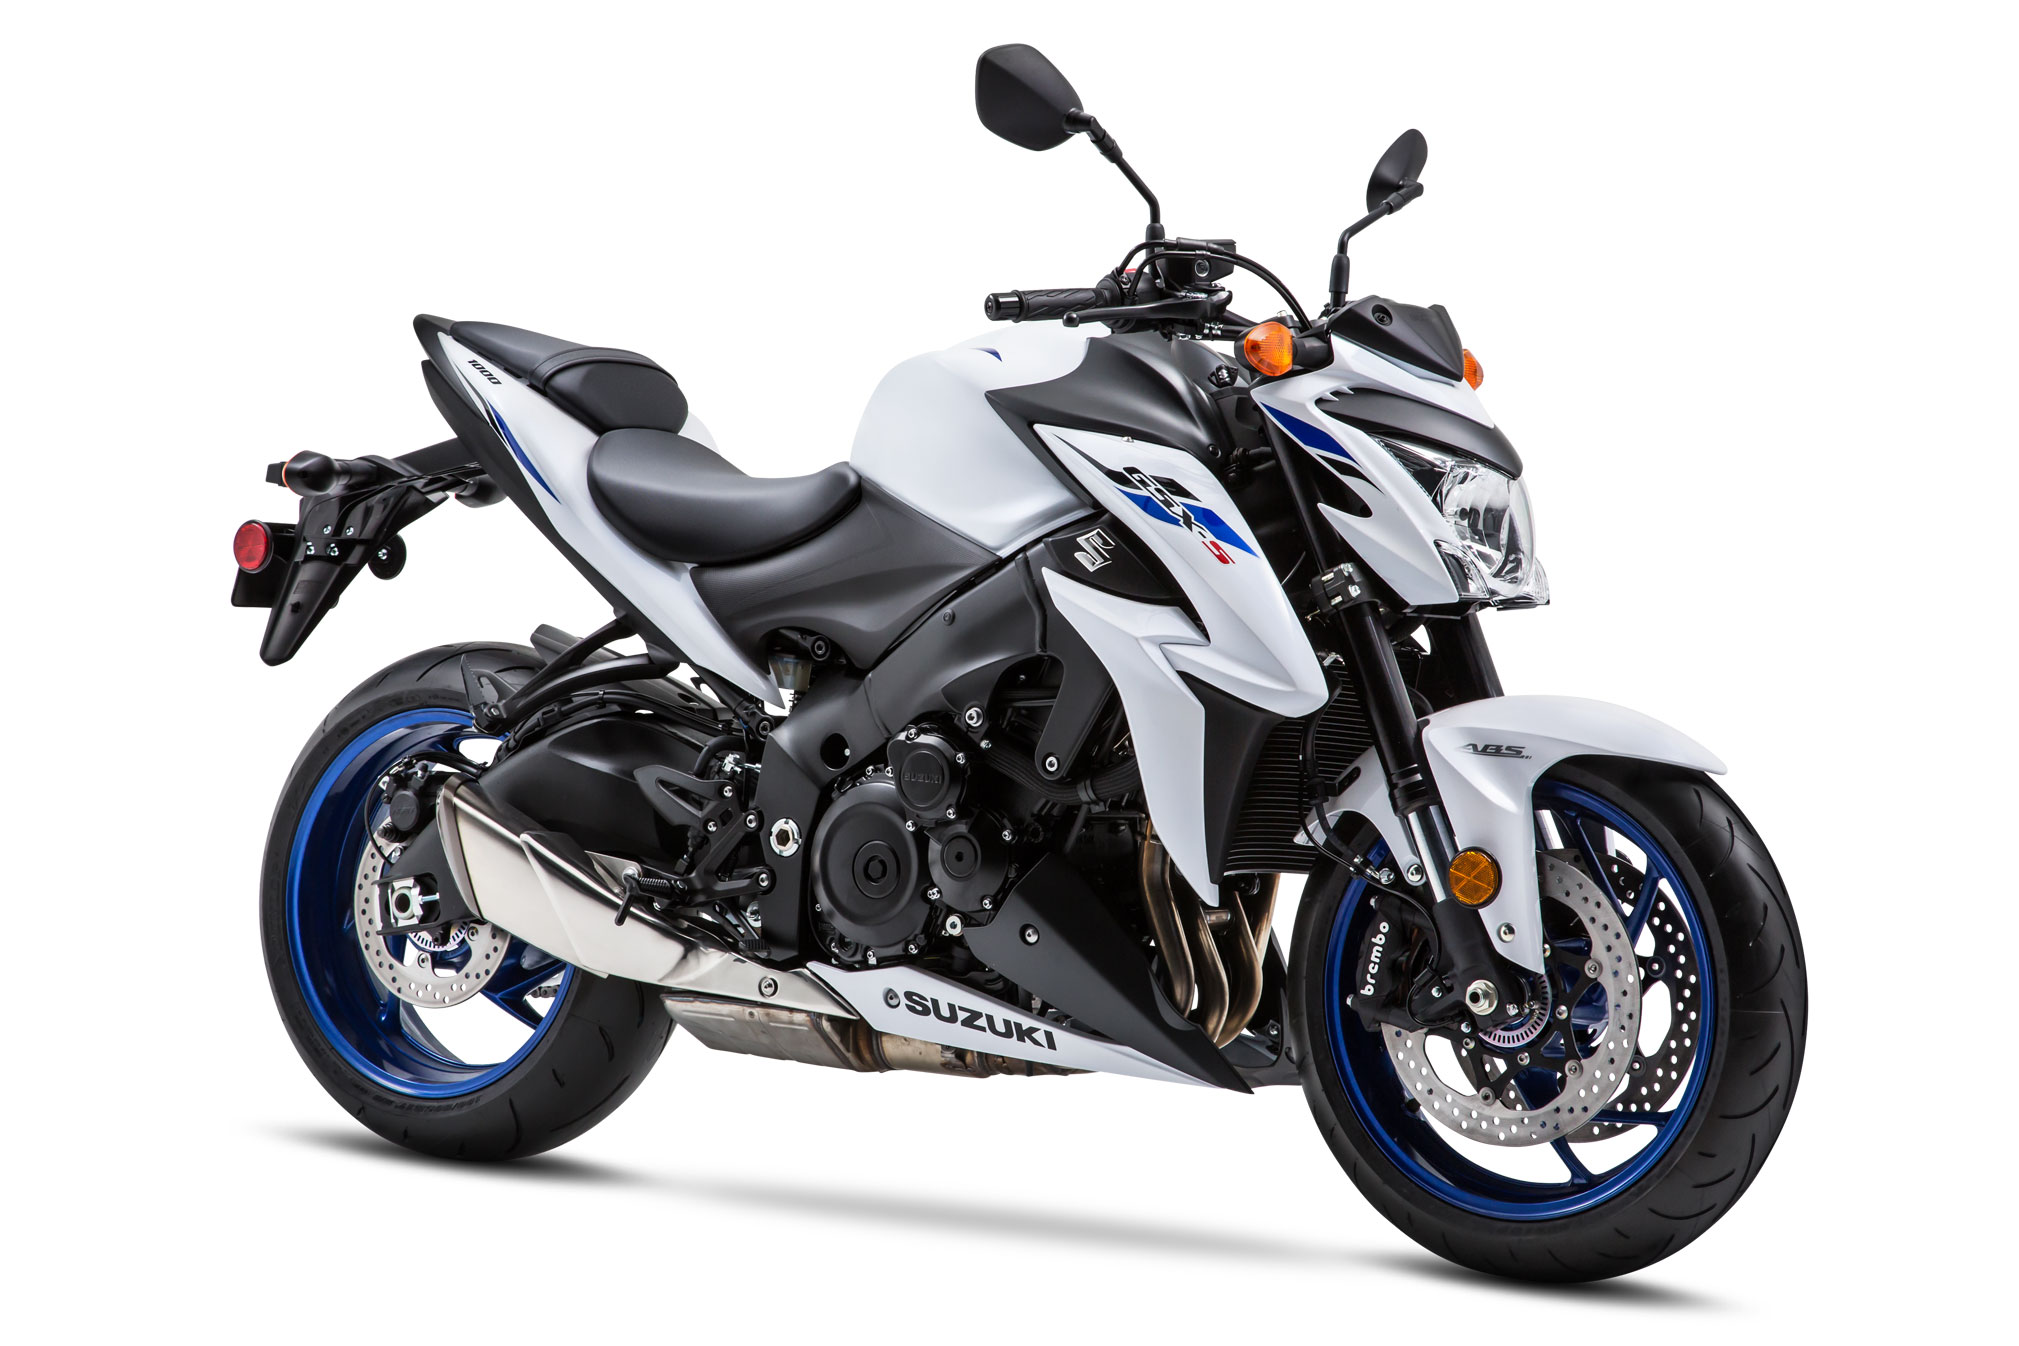 2019 Suzuki GSX-S1000 ABS Guide • Total Motorcycle